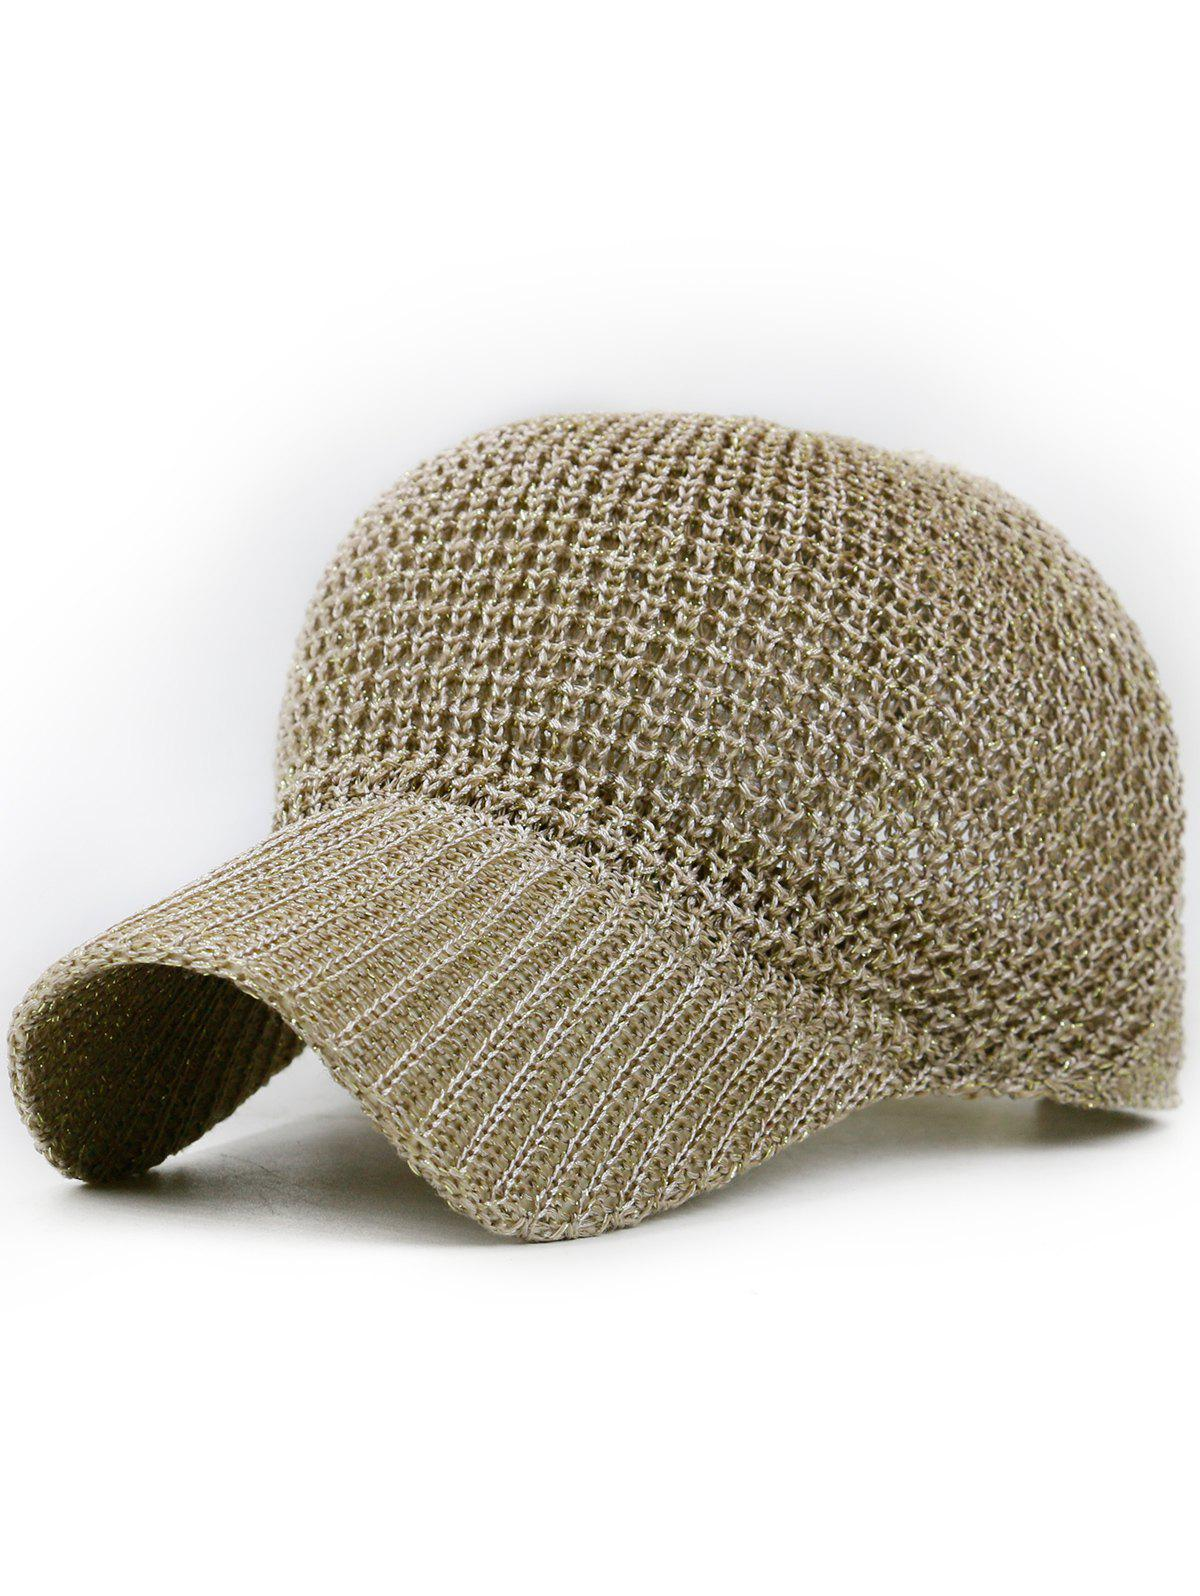 22487009279 2018 Outdoor Curved Brim Knitted Graphic Hat